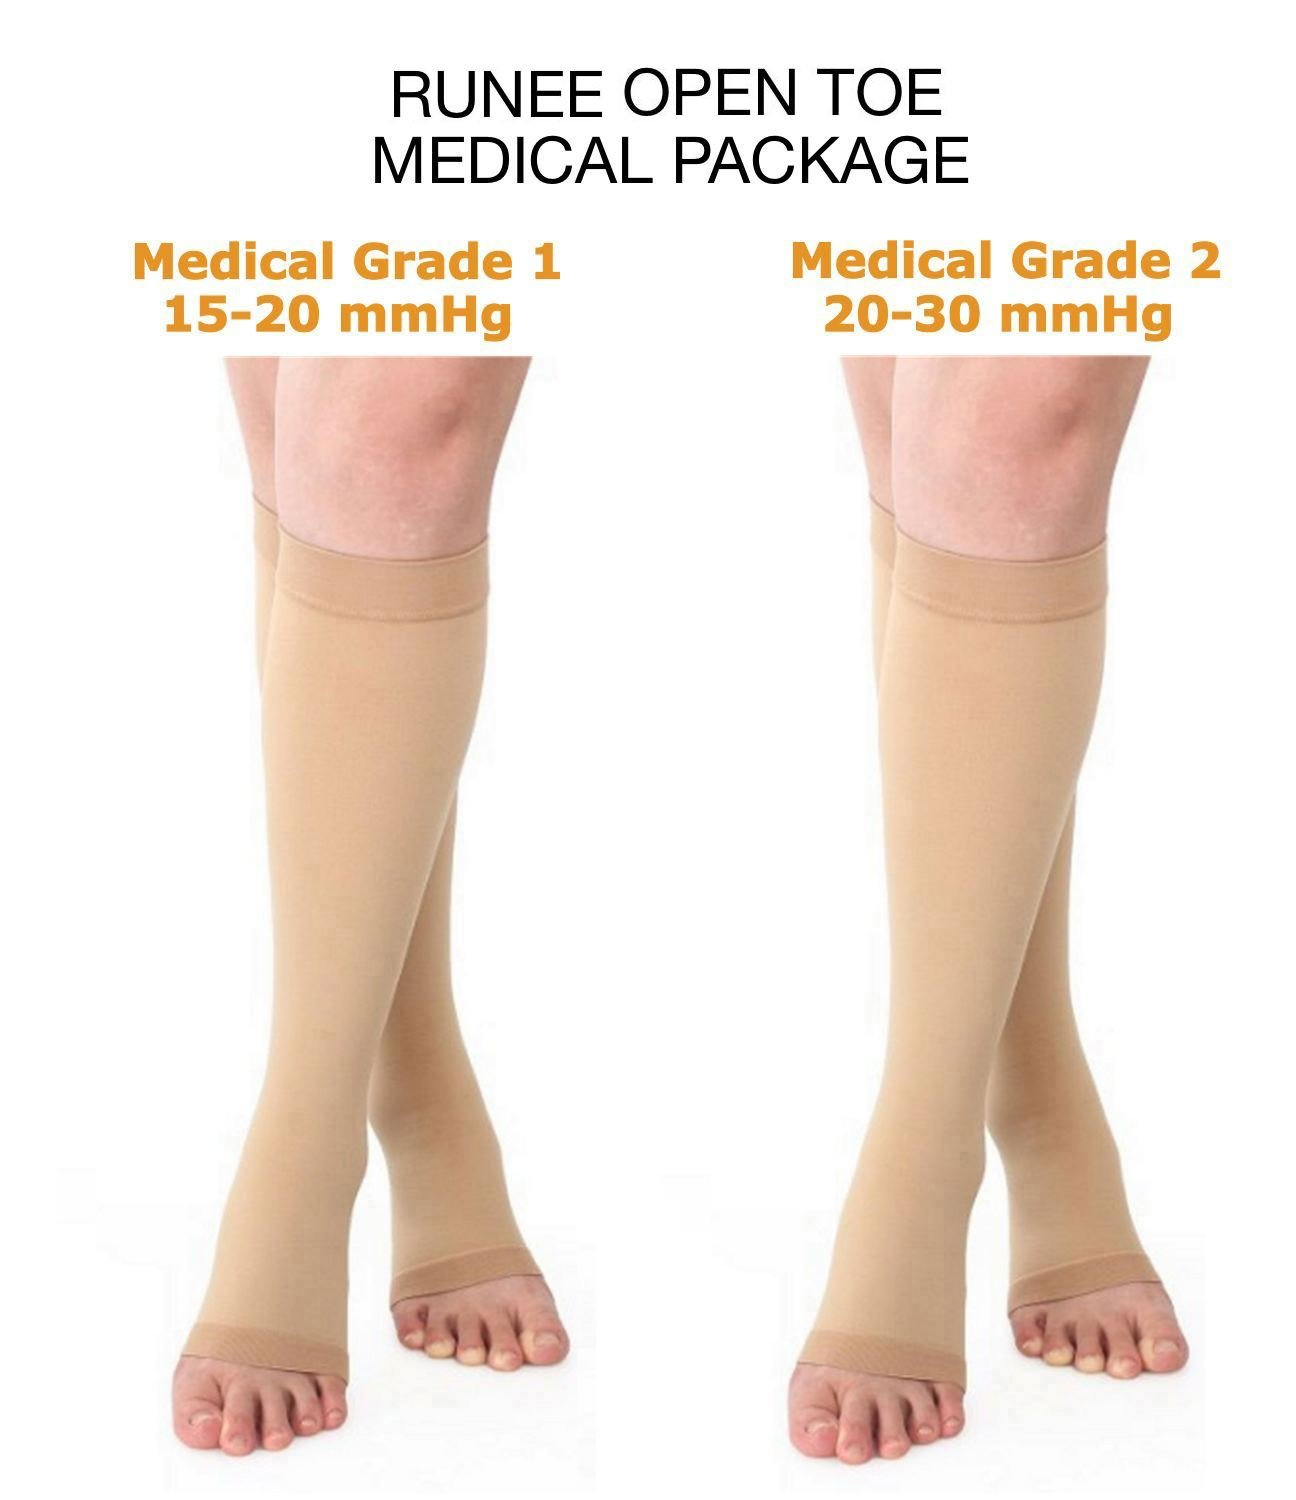 Runee Open Toe Medical Package - Grade One And Grade Two Compression Sock Knee High Hosiery Stocking For Swelling, Varicose Vein, Edema, Spider Vein (2XL, Beige)